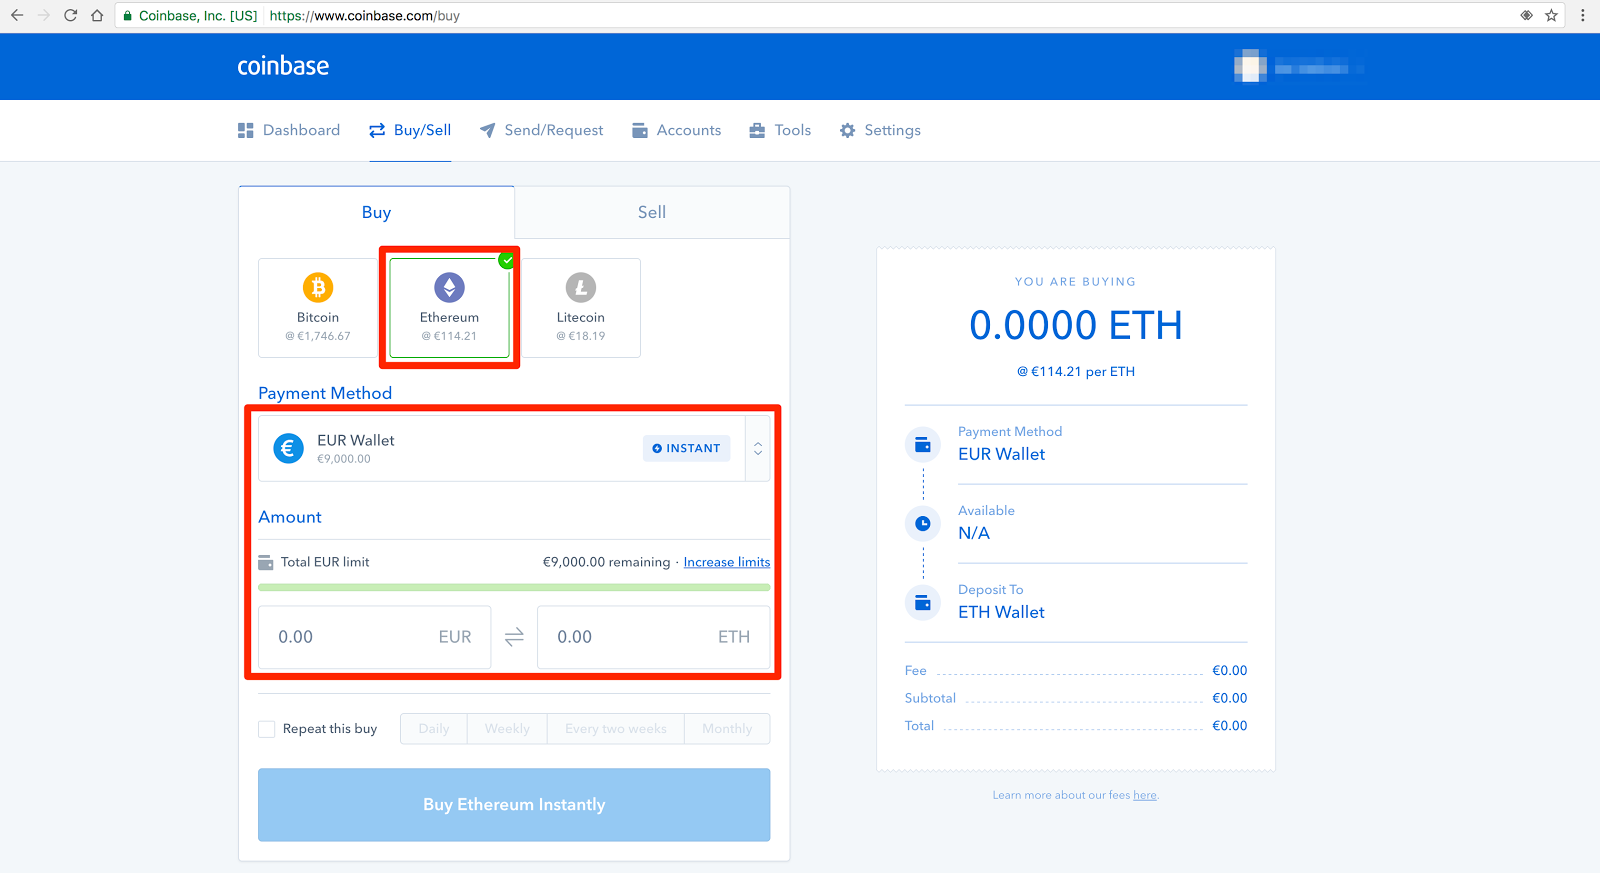 coinbase eth wallet address changes